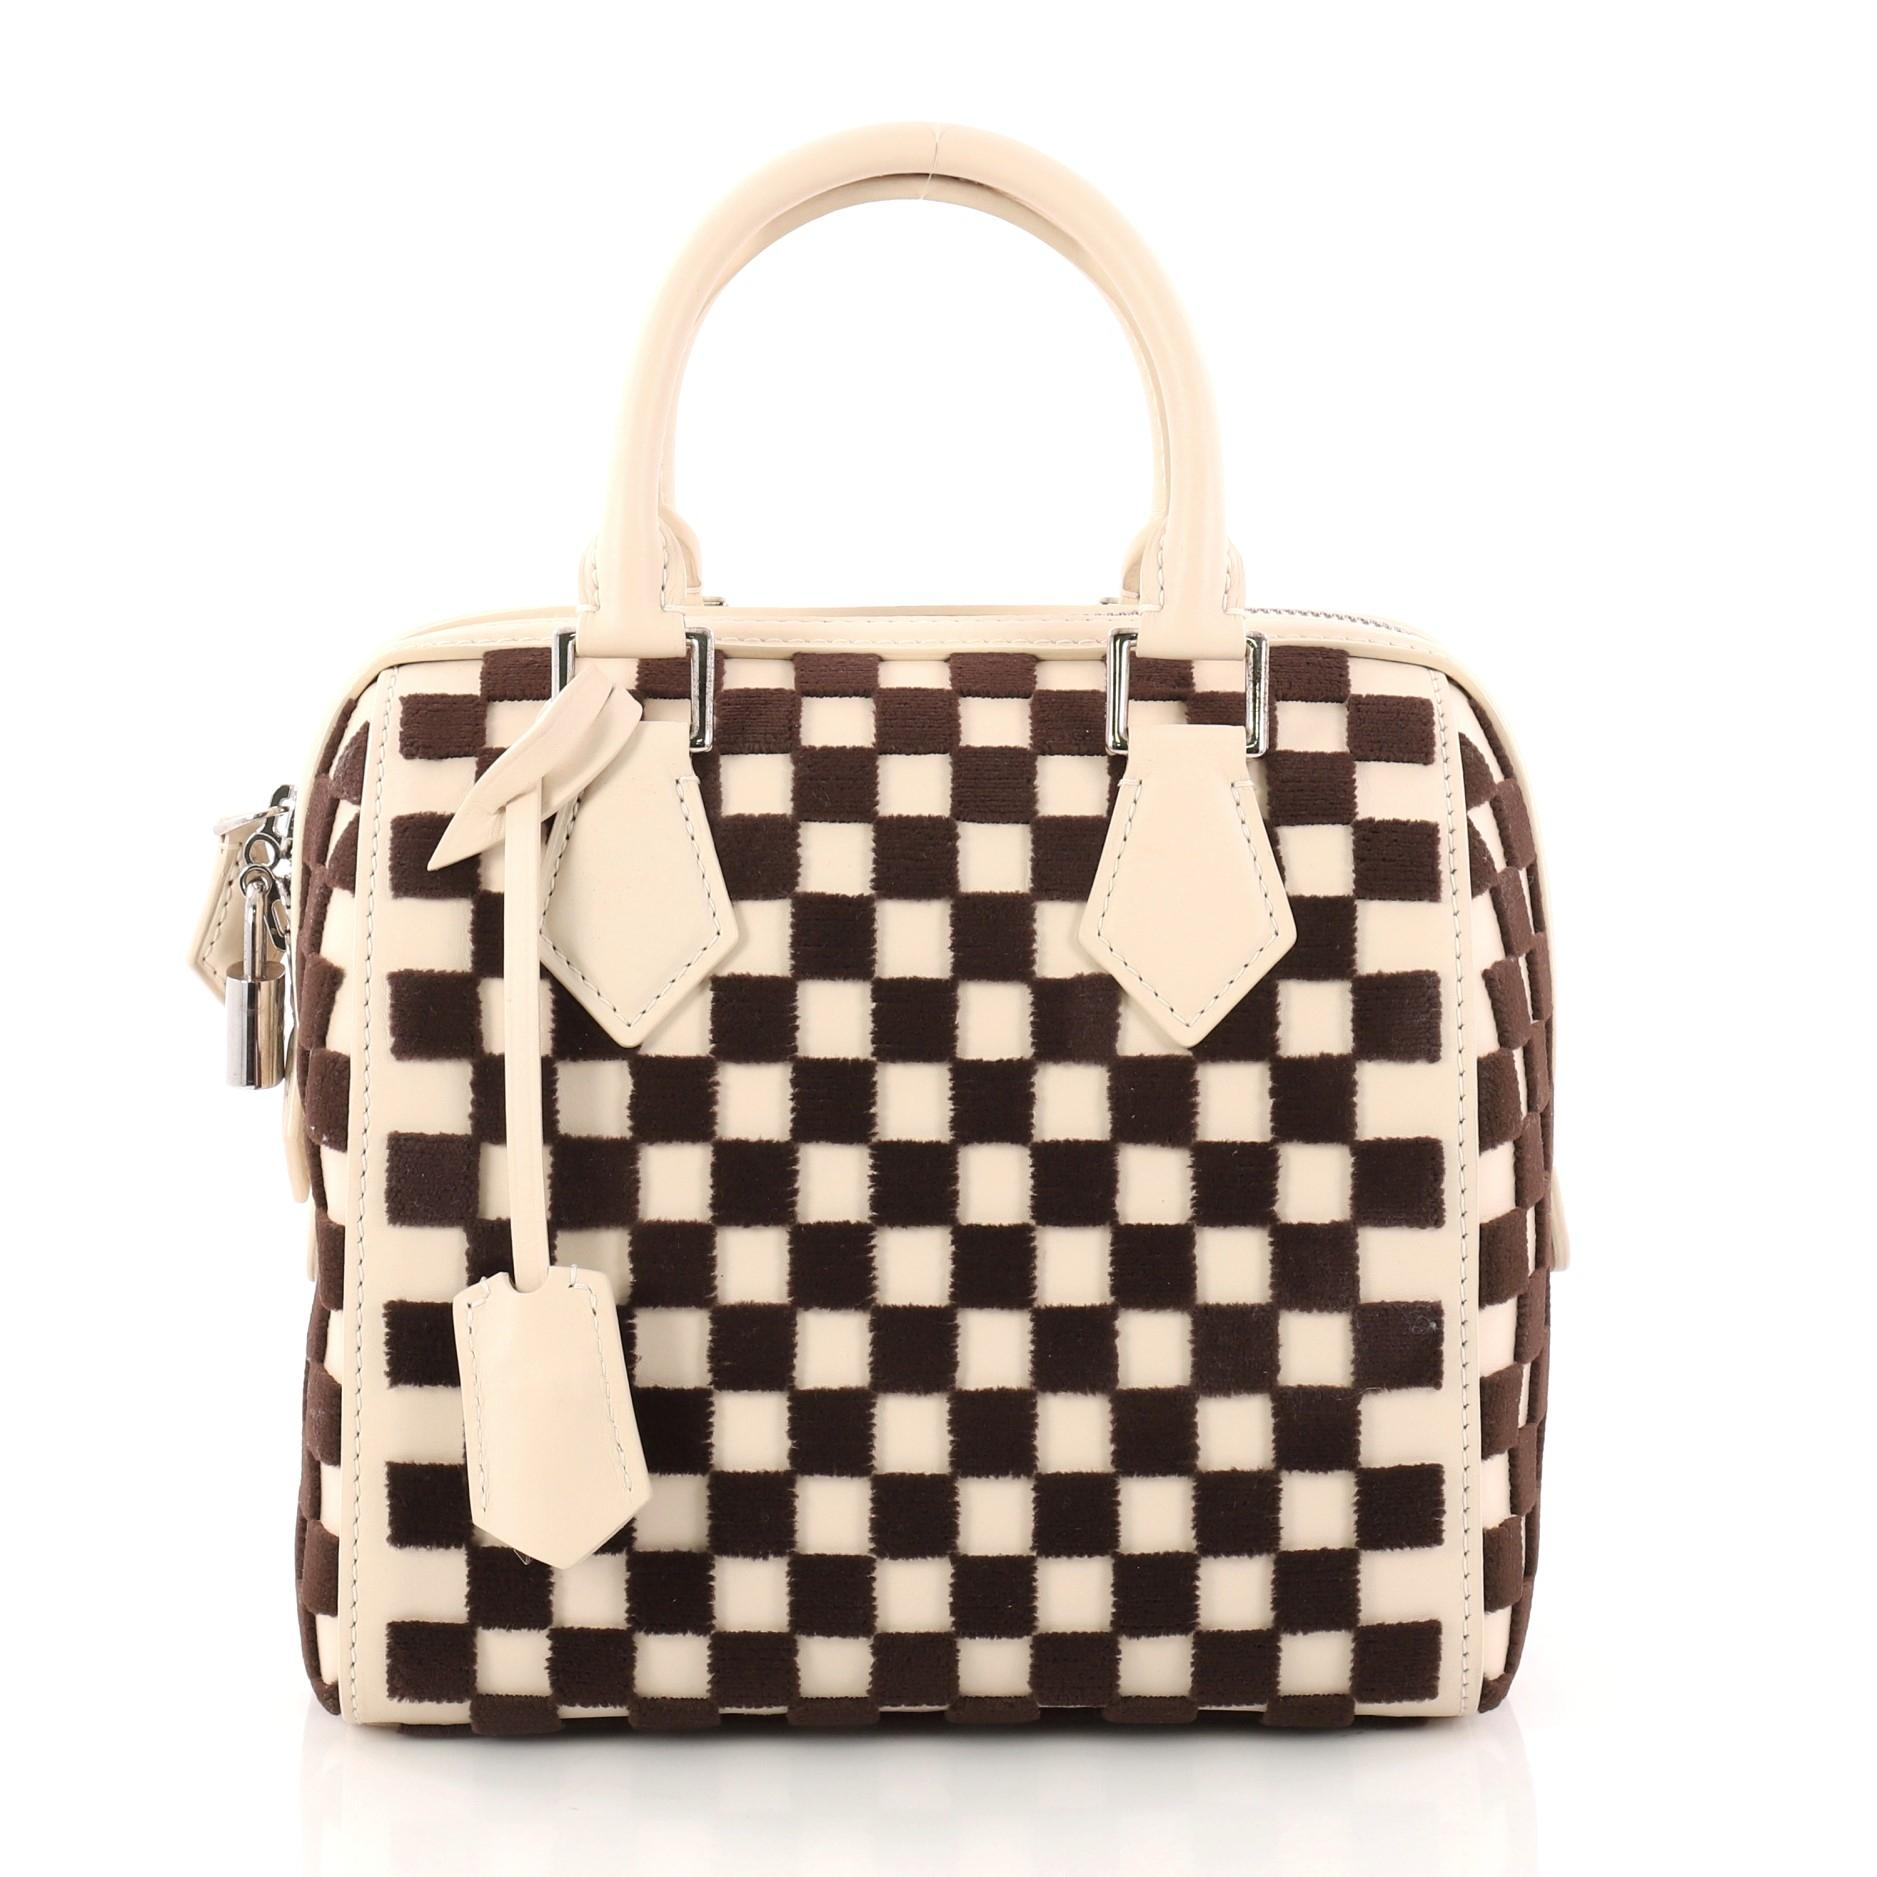 Louis Vuitton Speedy Cube Bag Damier Cubic Leather And Velvet Pm